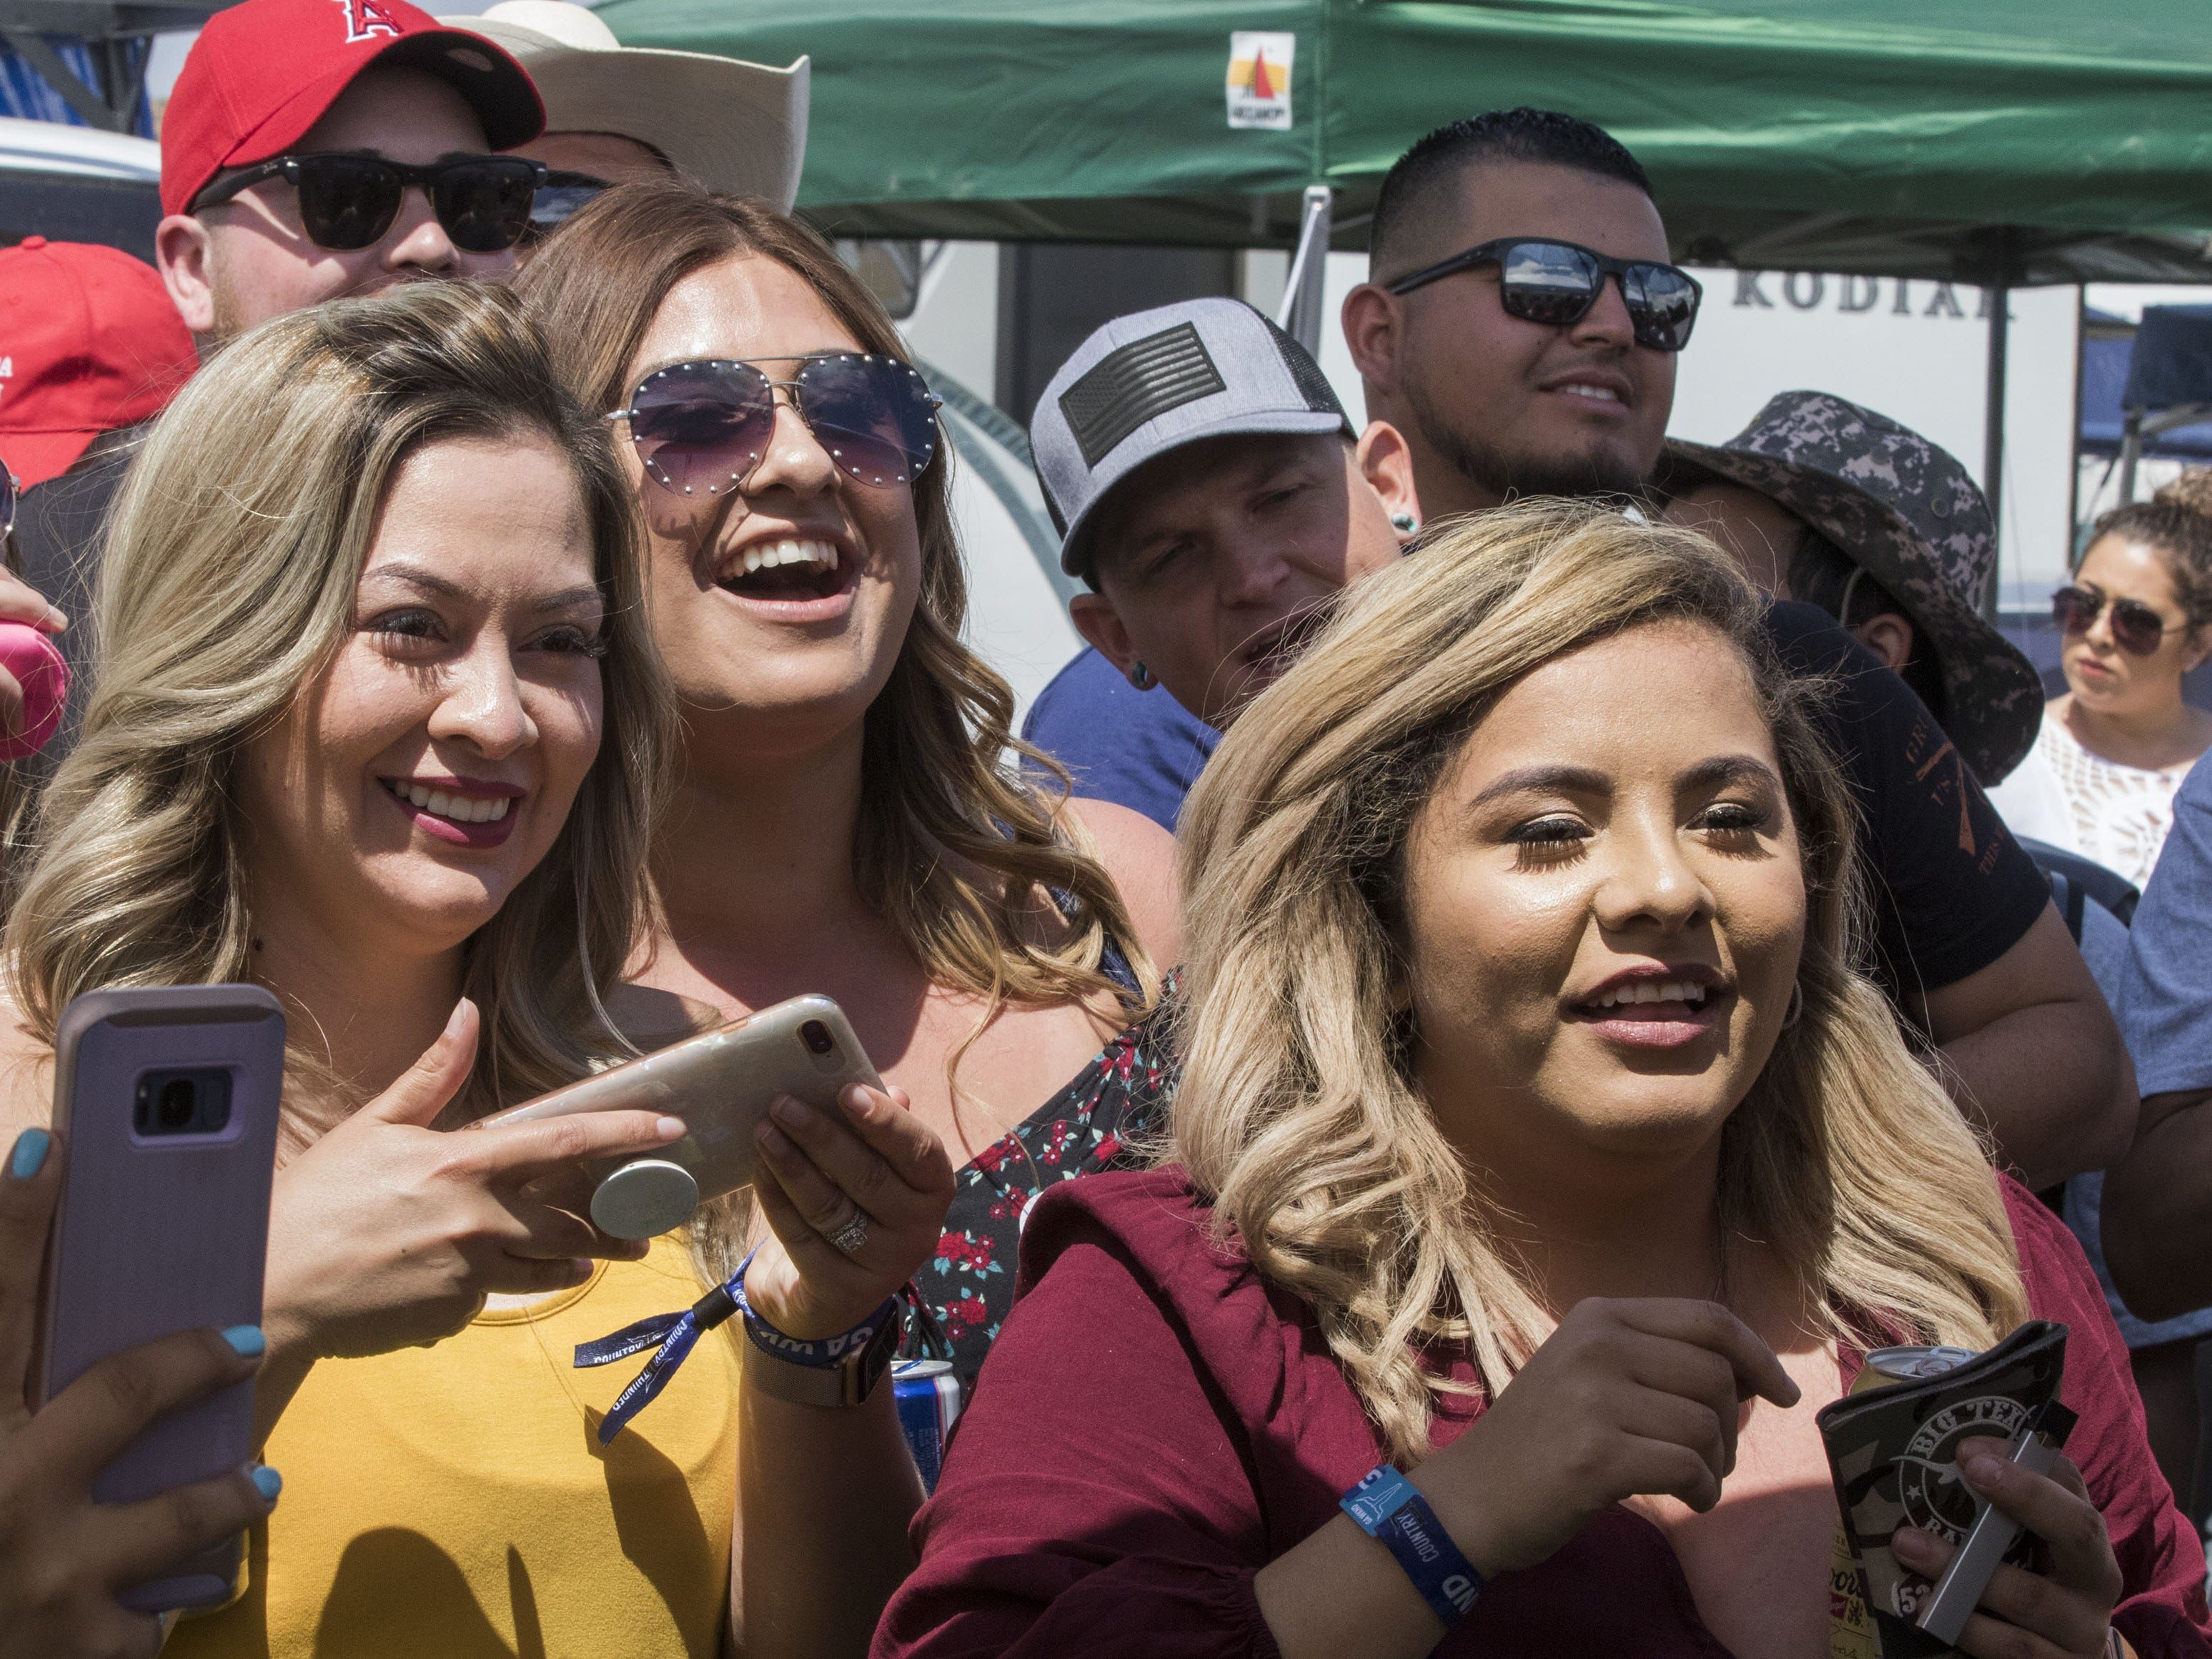 Fans cheer during the beer chugging game at Country Thunder Arizona Friday, April 12, 2019, in Florence, Ariz.